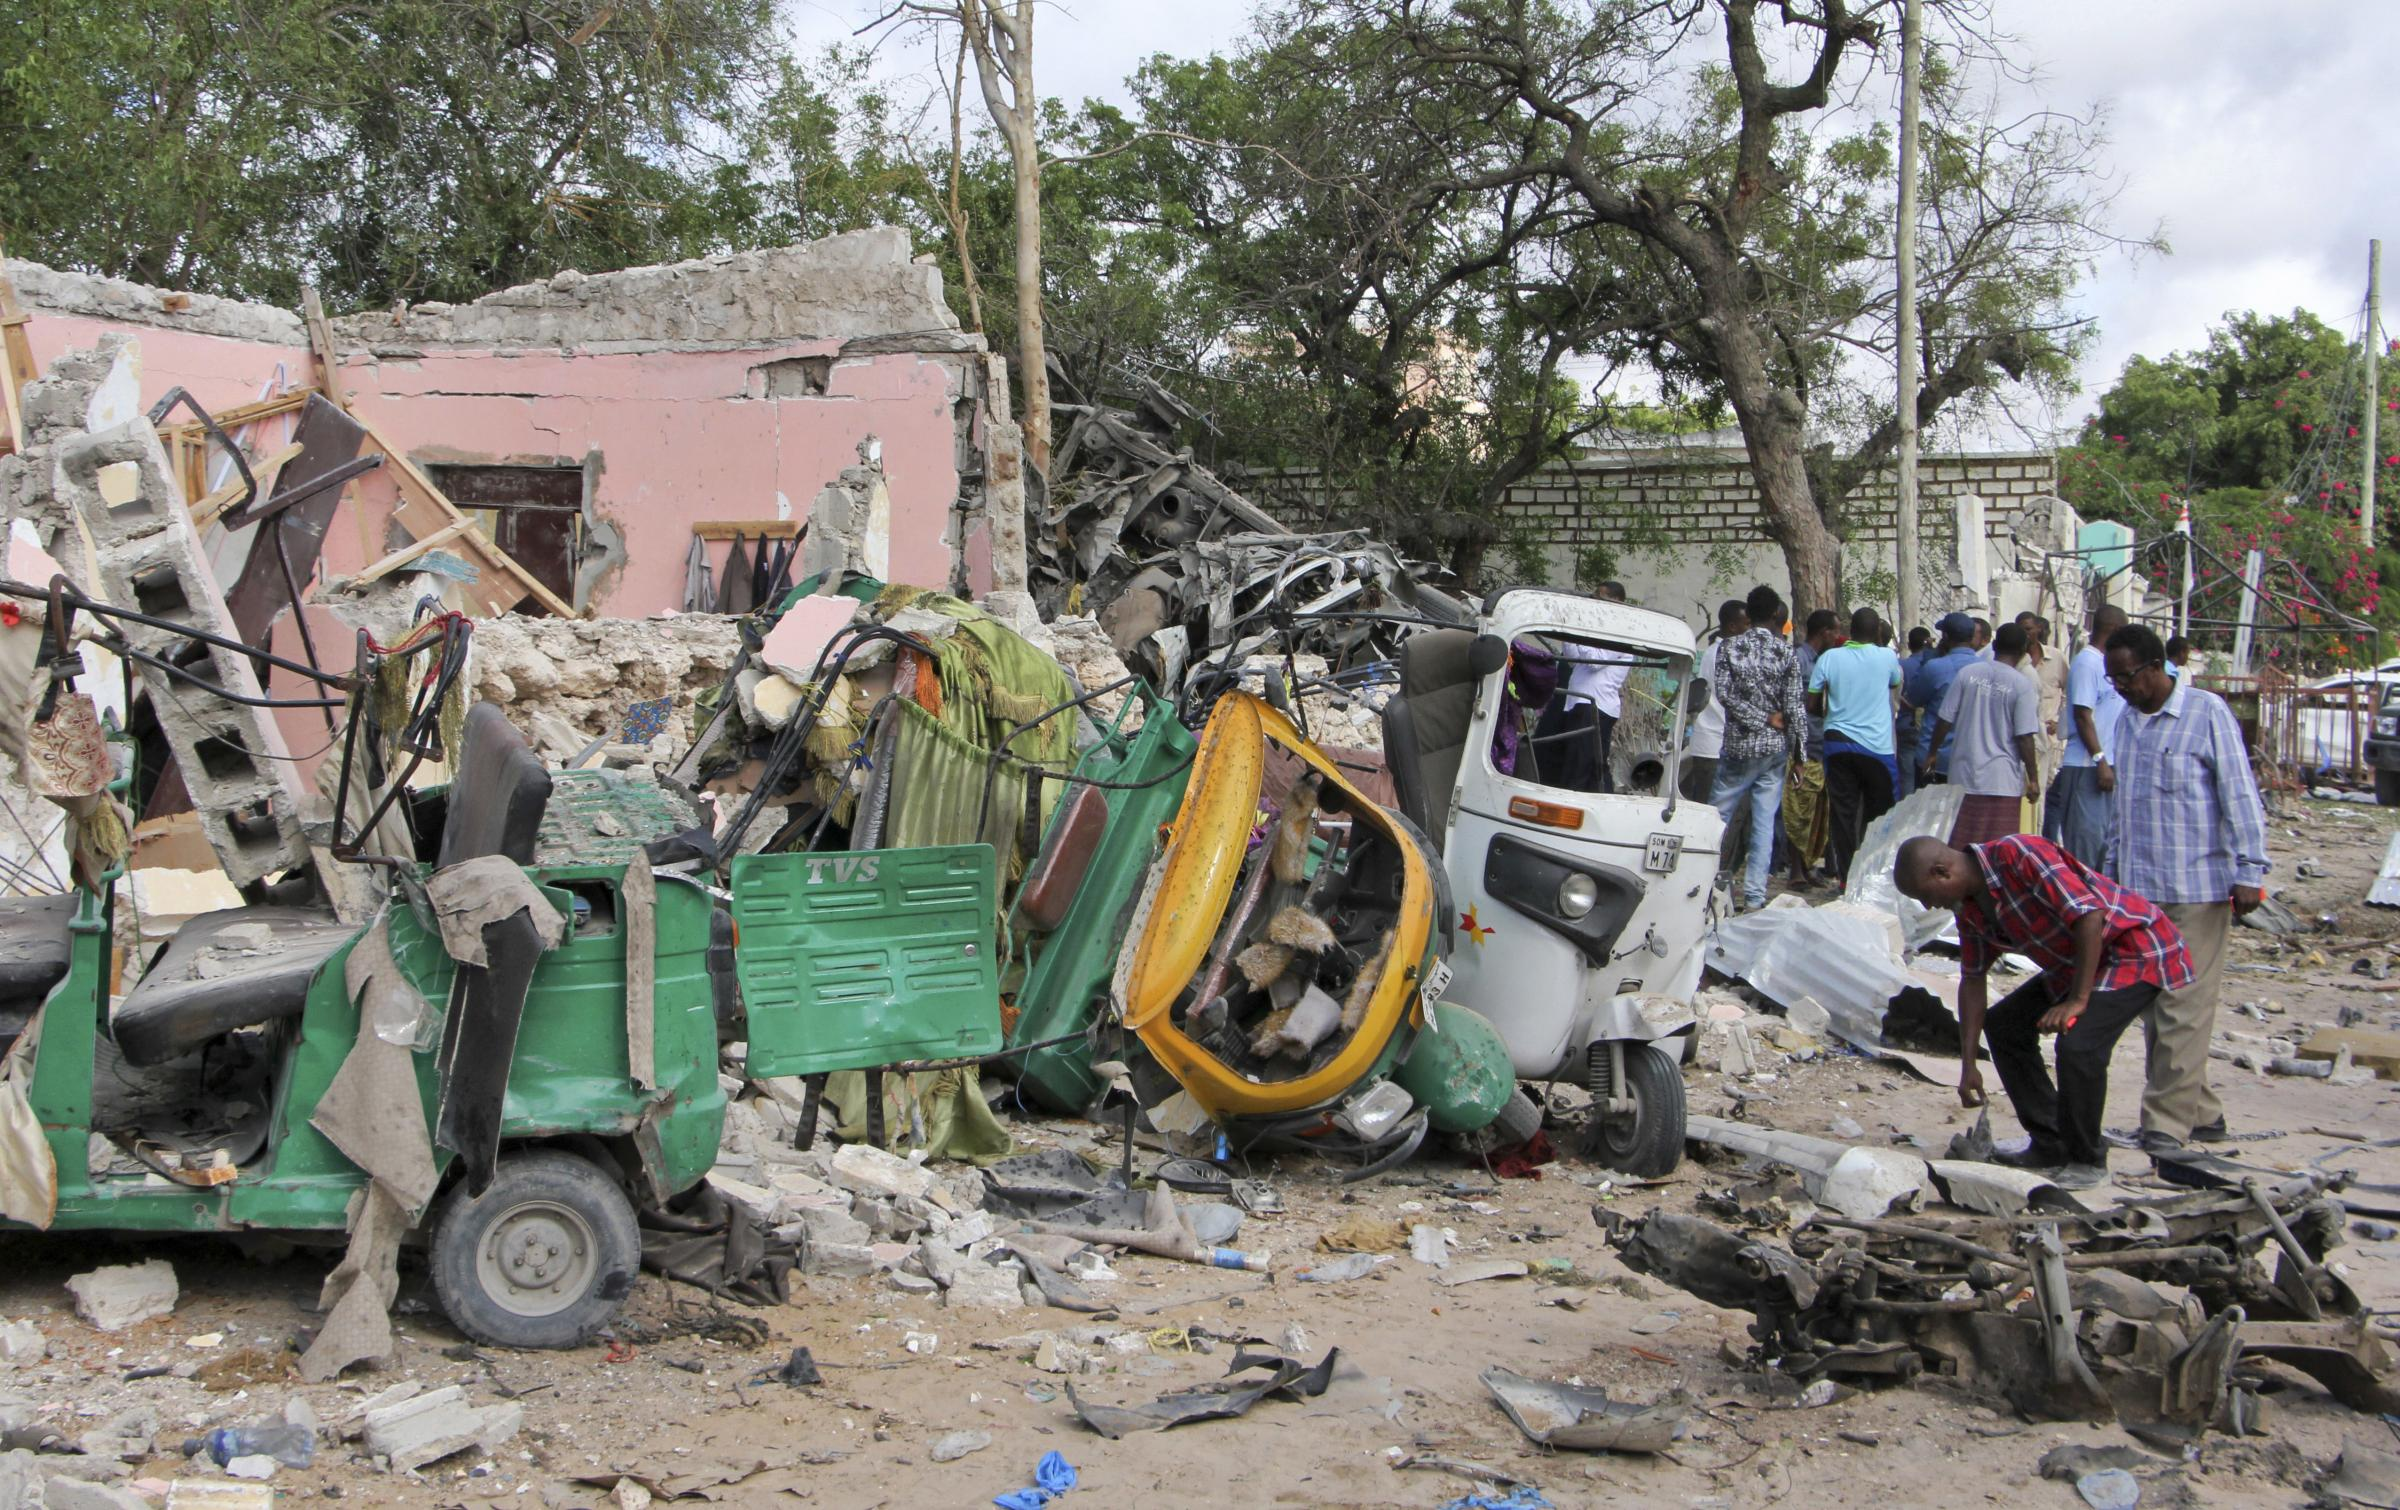 Al-Shabab terrorists kill 31 in pizza restaurant siege